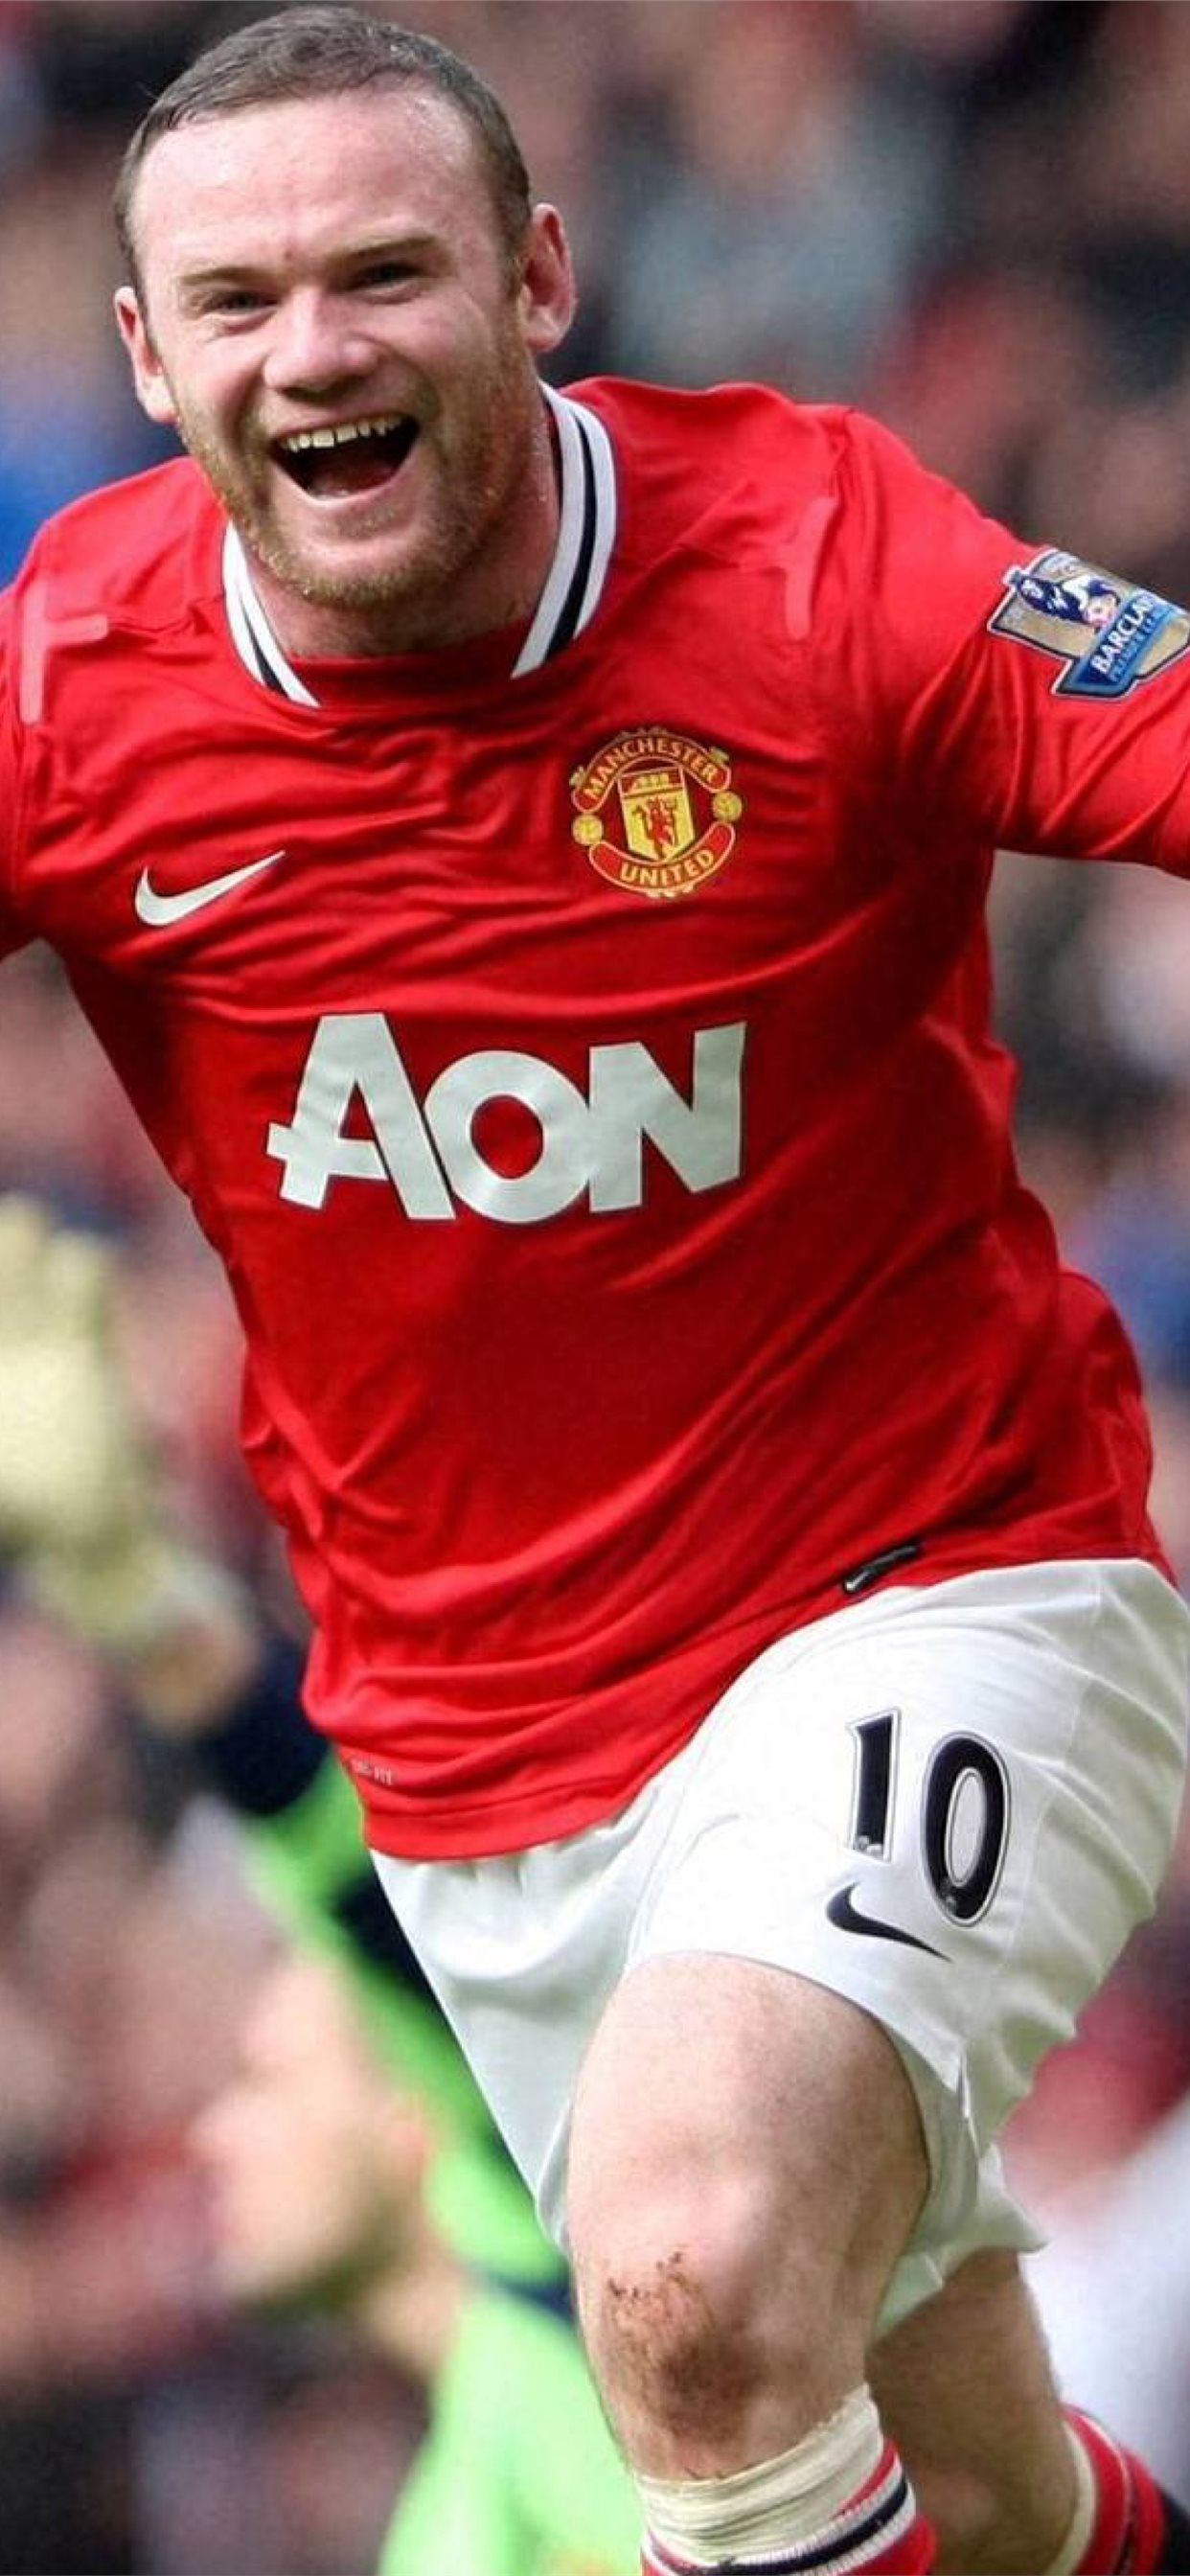 Wayne Rooney Manchester United Footballer Iphone 11 Wallpapers Free Download